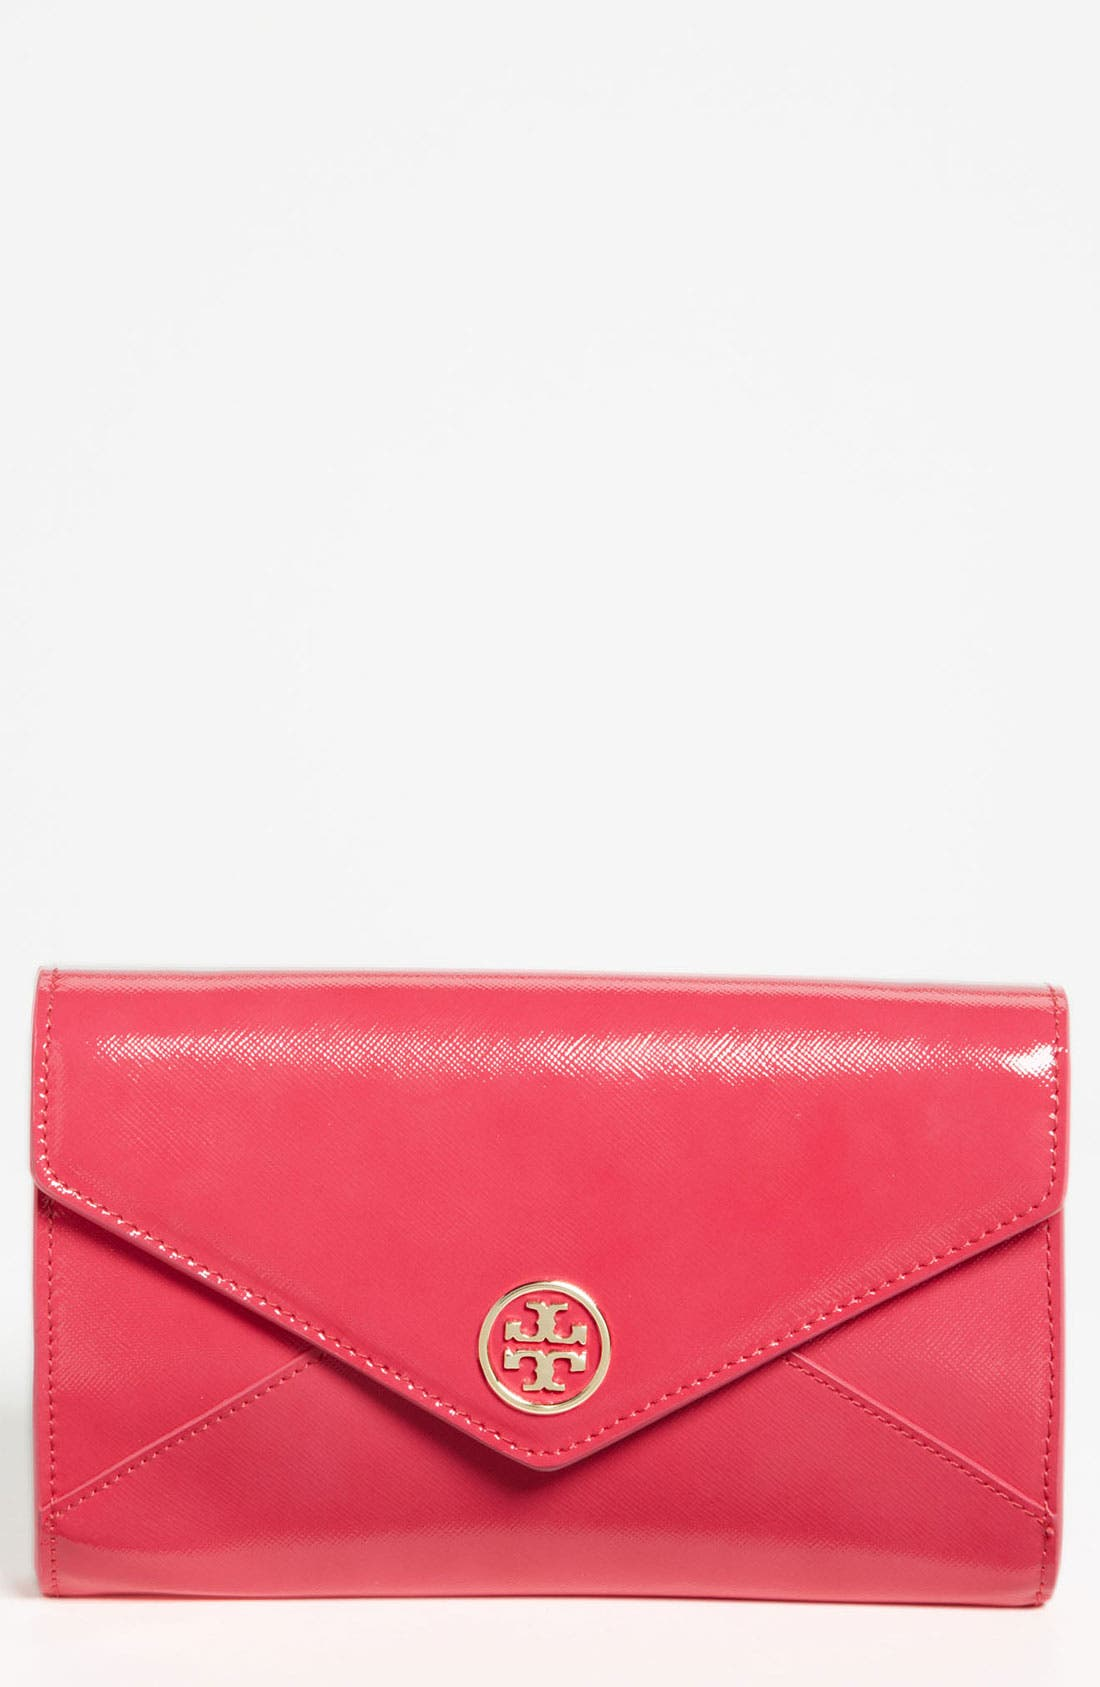 Alternate Image 1 Selected - Tory Burch 'Robinson - Small' Envelope Clutch